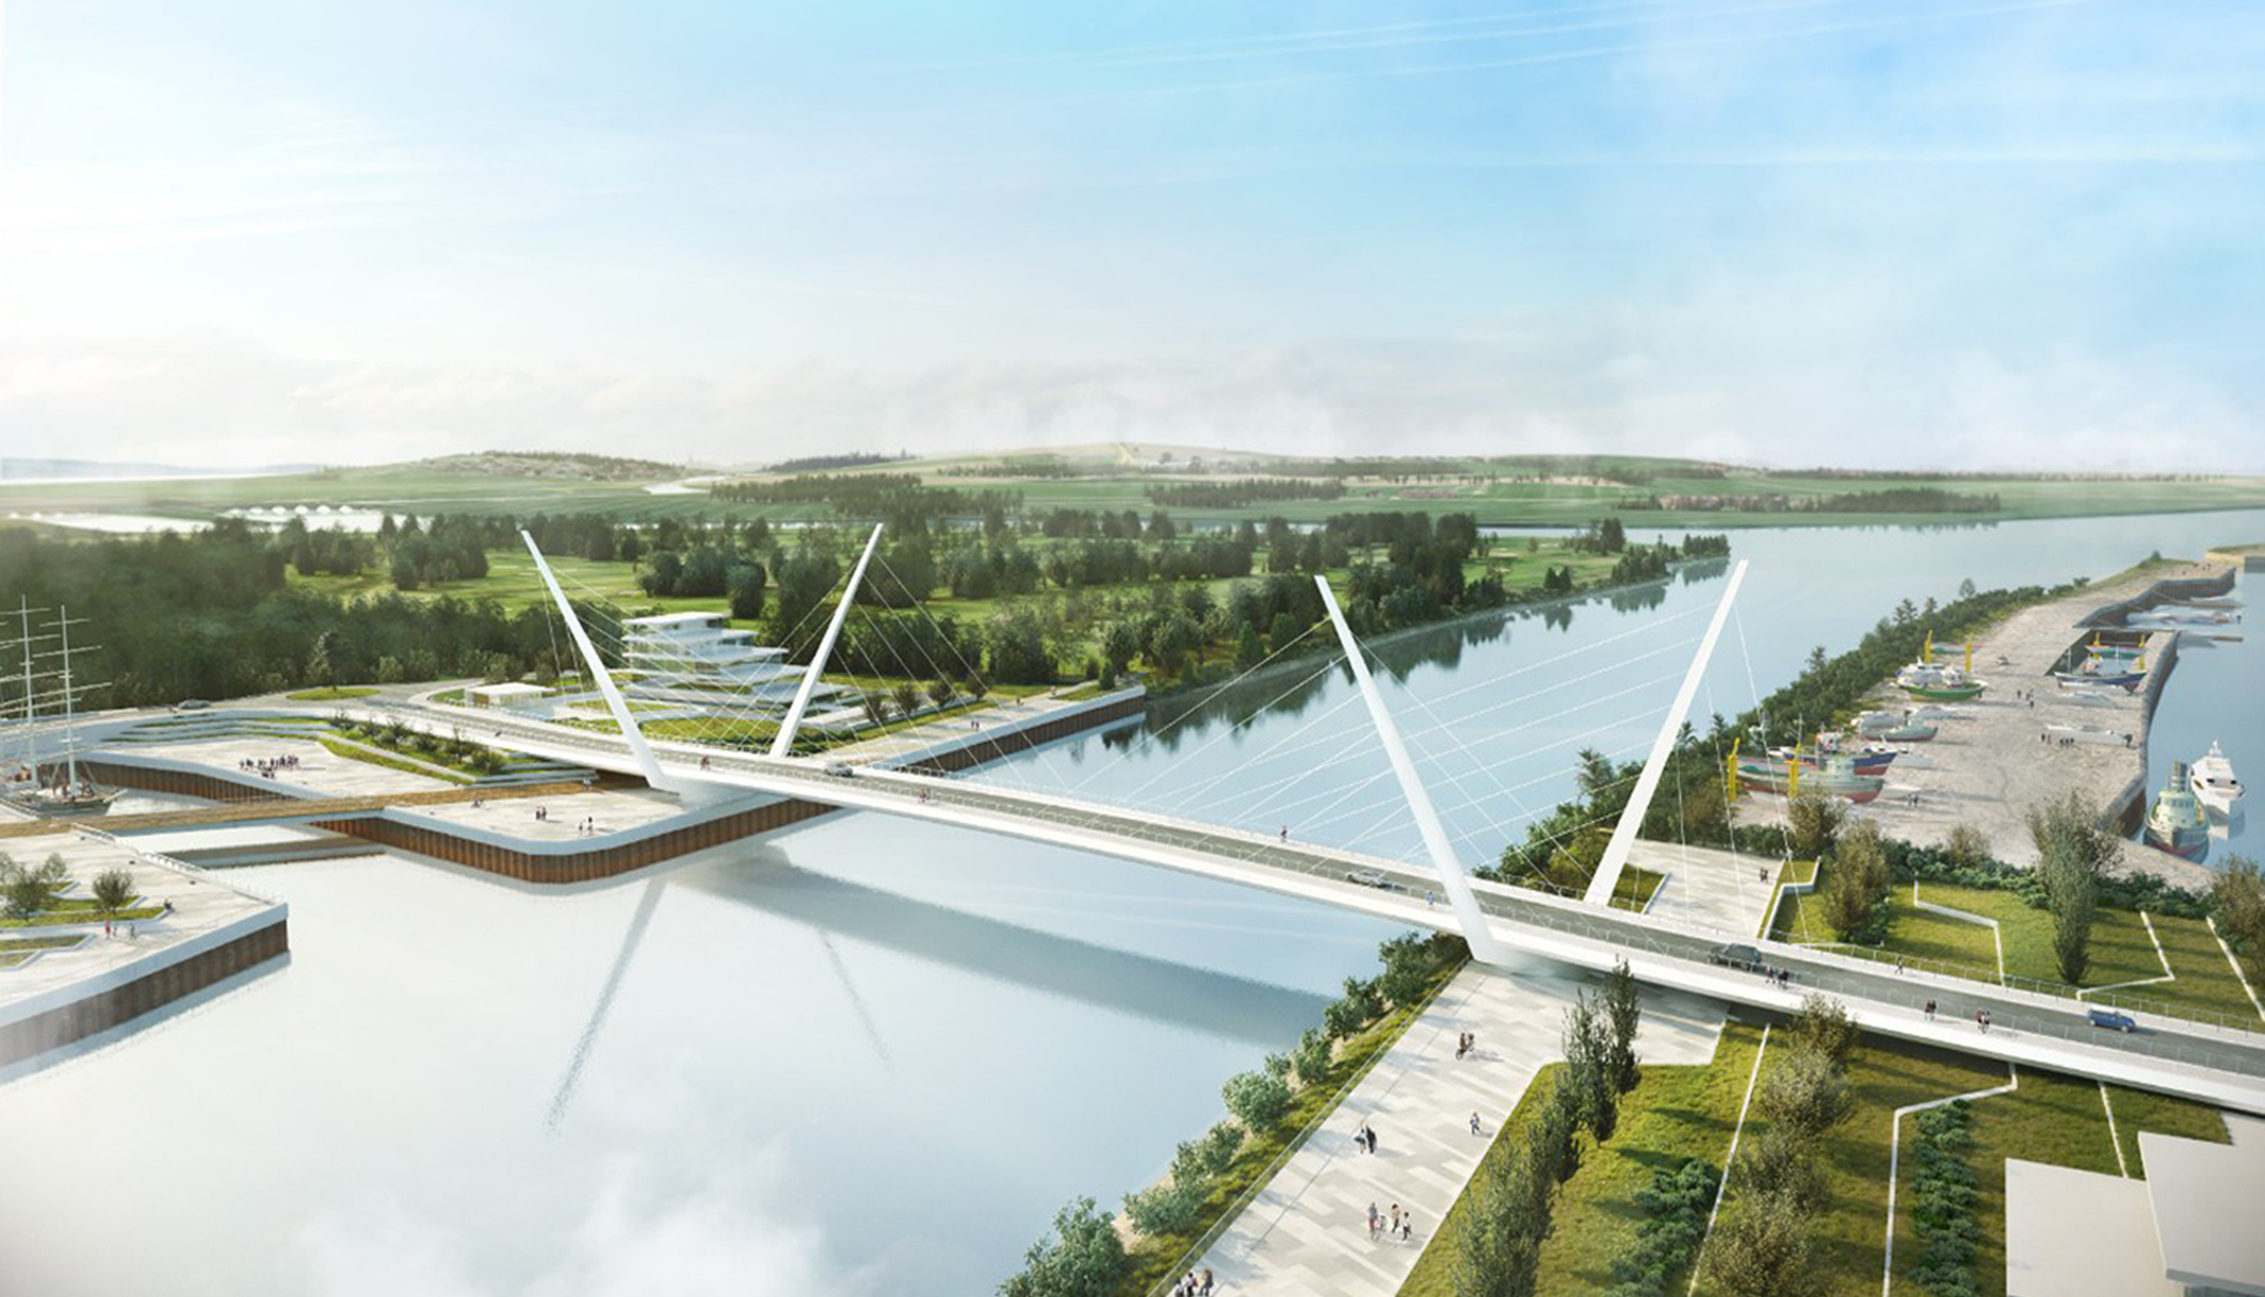 How the bridge could look closed.